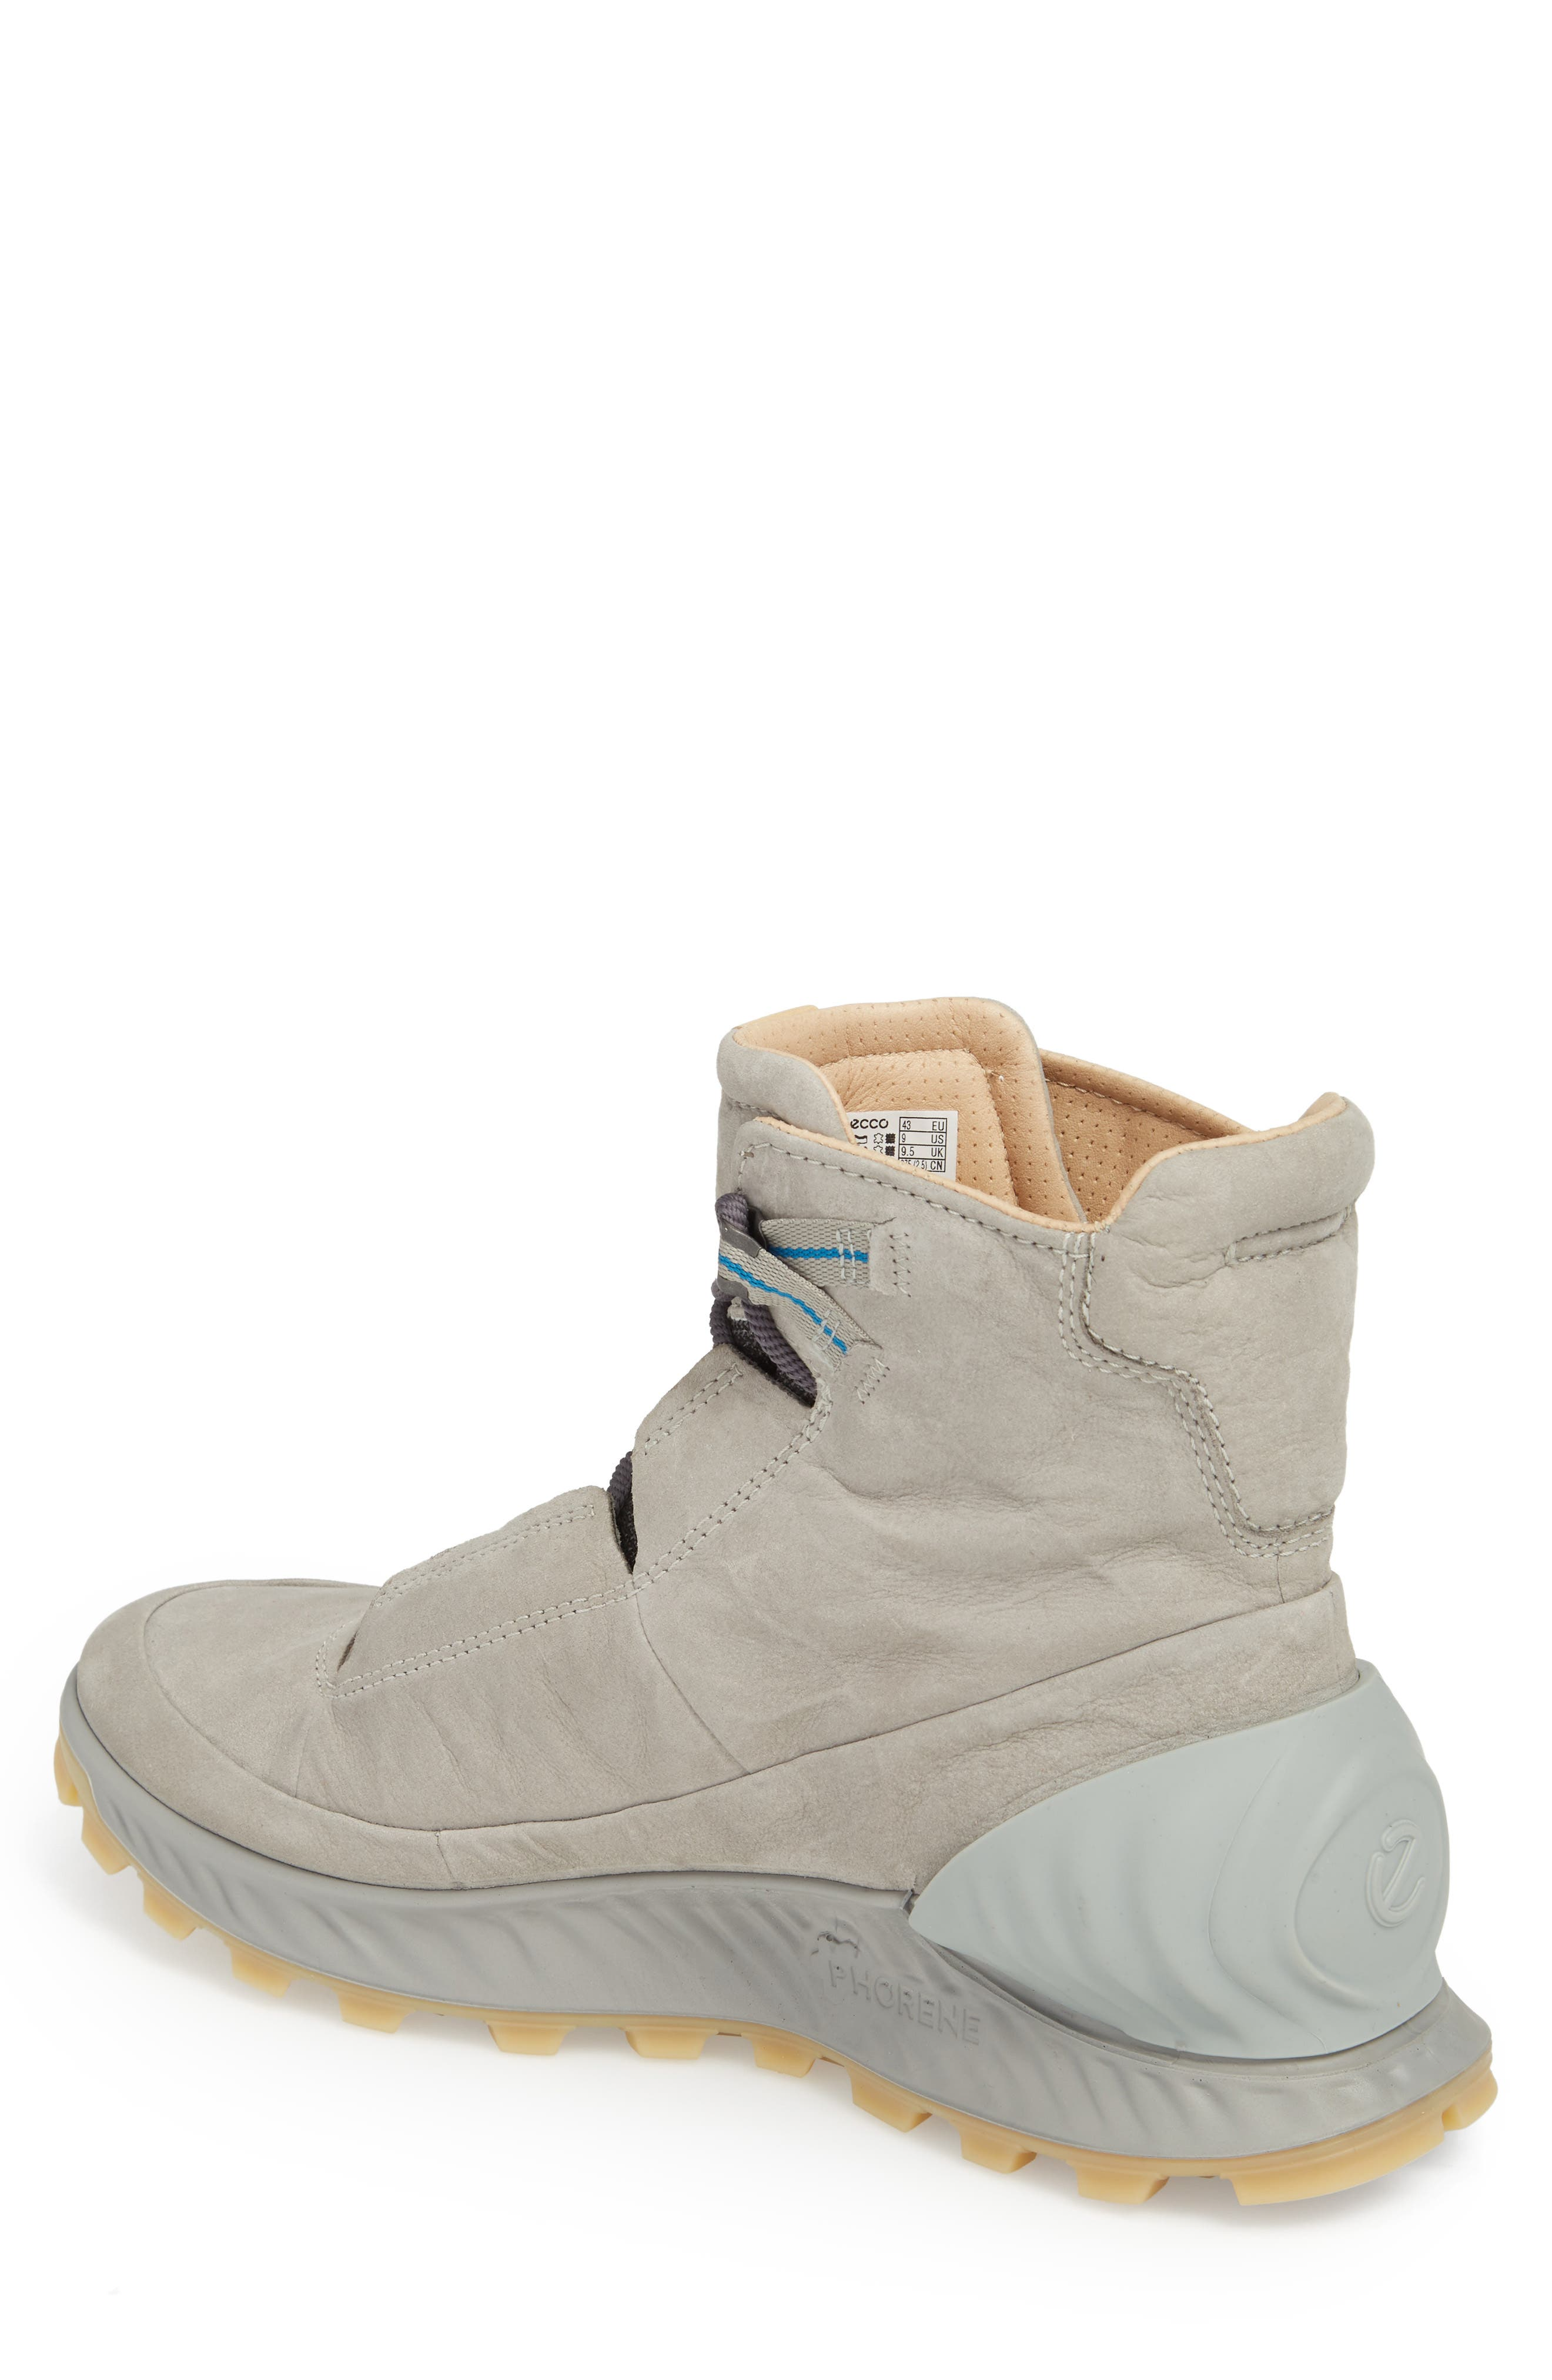 Limited Edition Exostrike Dyneema Sneaker Boot,                             Alternate thumbnail 2, color,                             Wild Dove Leather